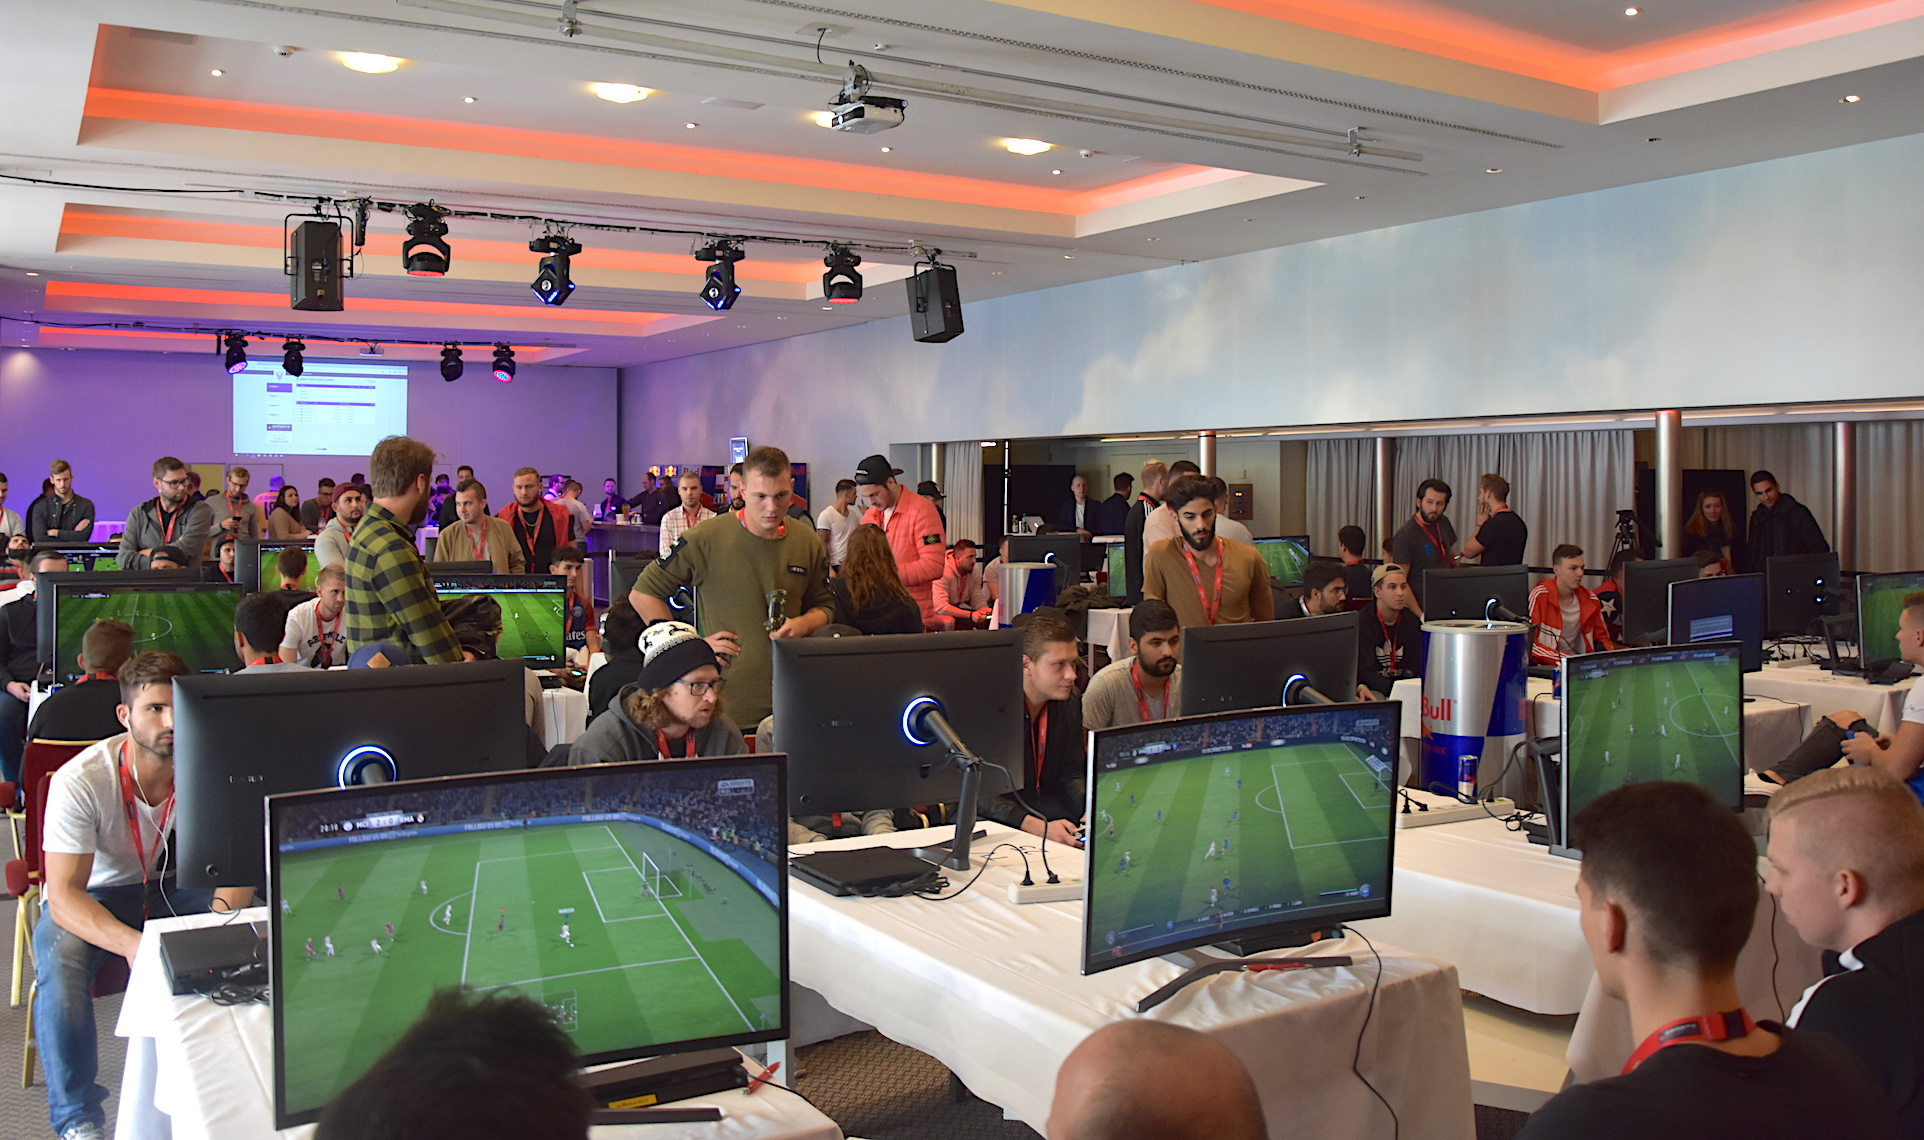 Showdown im Casino: E-Sports-Turnier in Luzern.